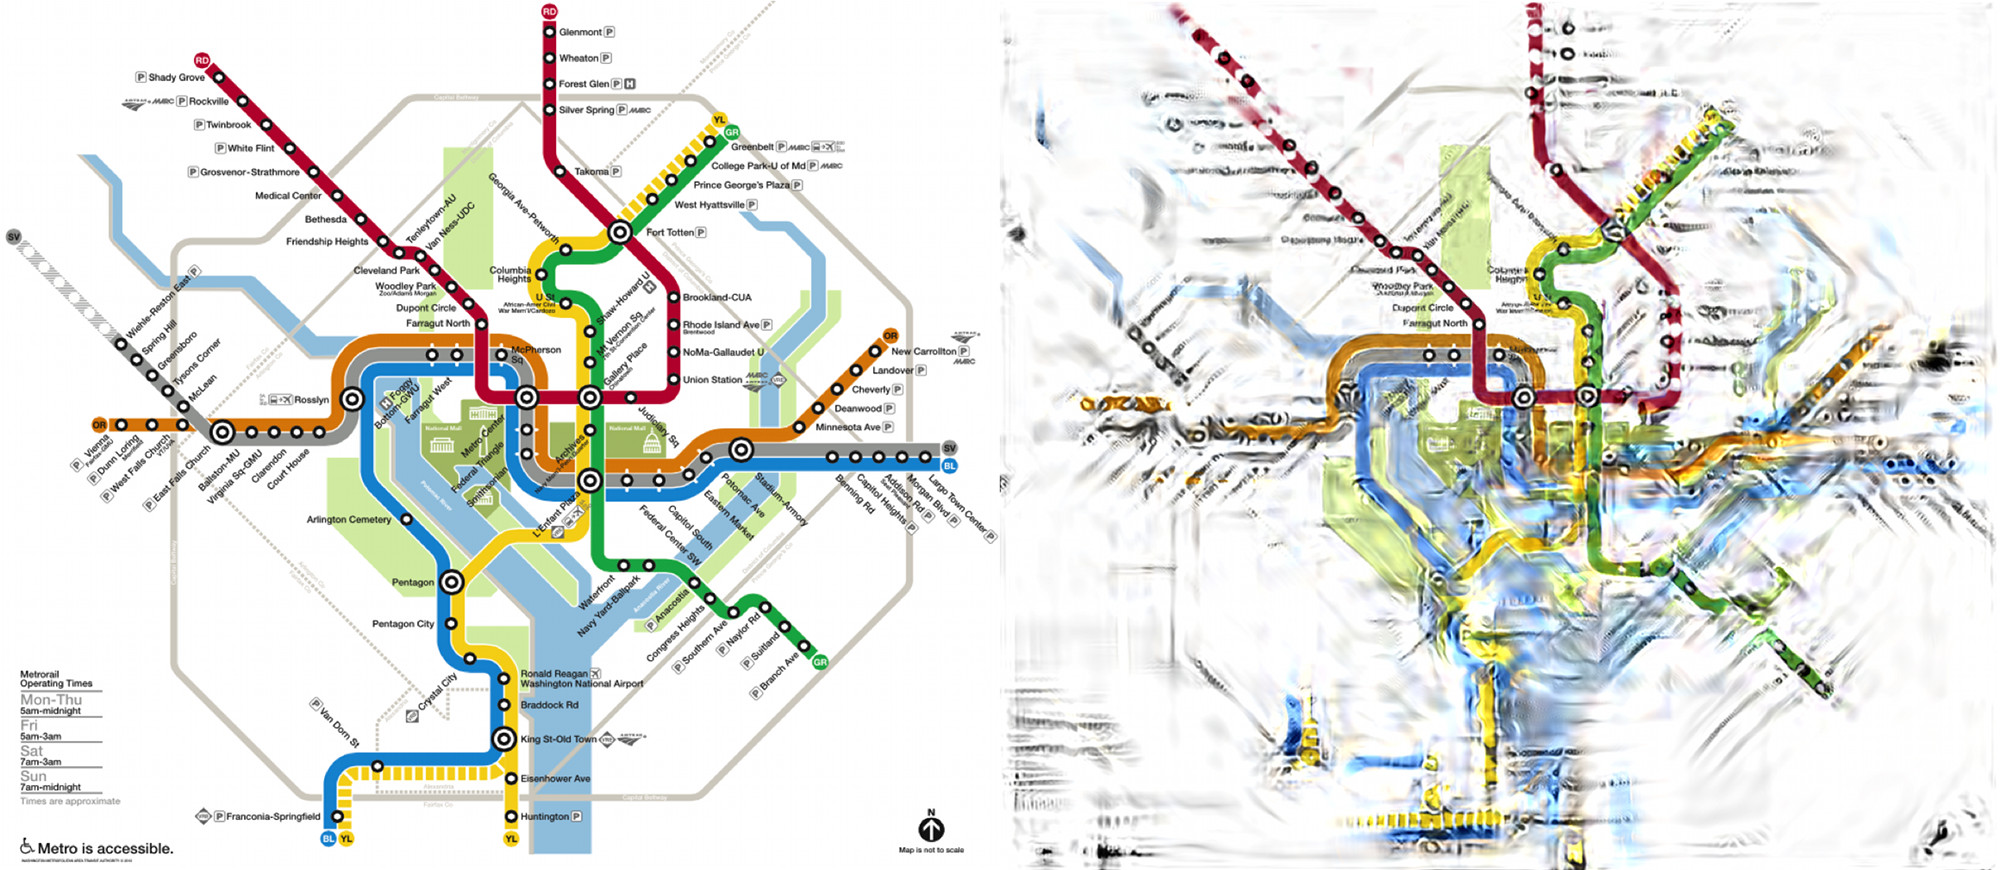 Real Dc Subway Map.Can Science Untangle Our Transit Maps Science Friday